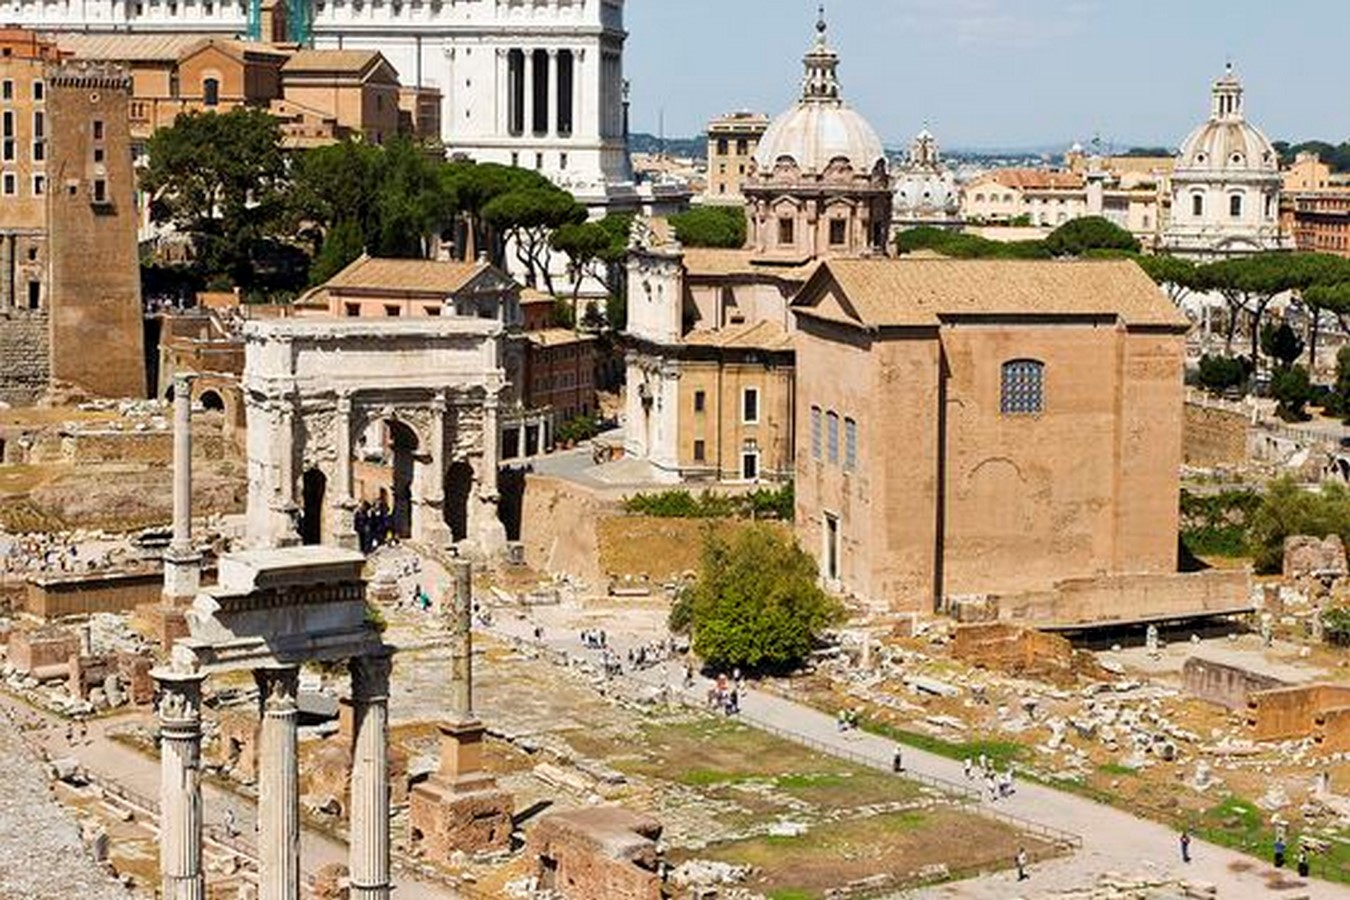 The Roman Forum, Rome: Heritage stuck in time - Sheet3